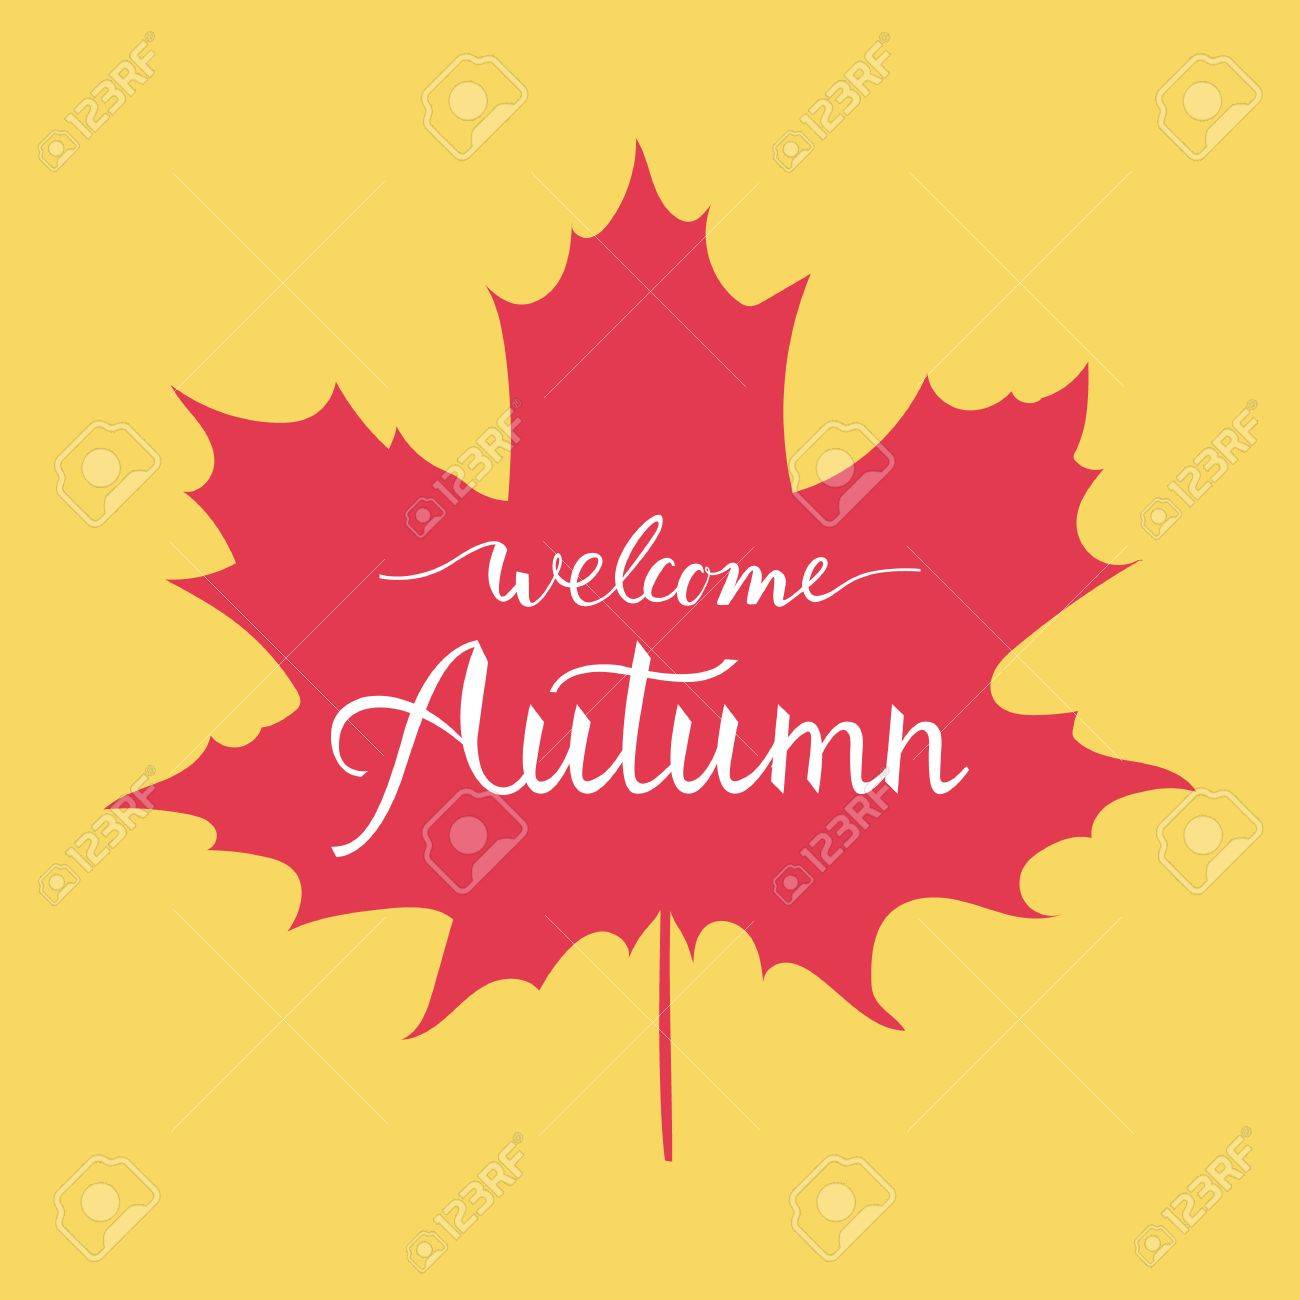 Welcome autumn hand lettering greeting card design element with welcome autumn hand lettering greeting card design element with maple leaves stock vector 87218637 kristyandbryce Choice Image